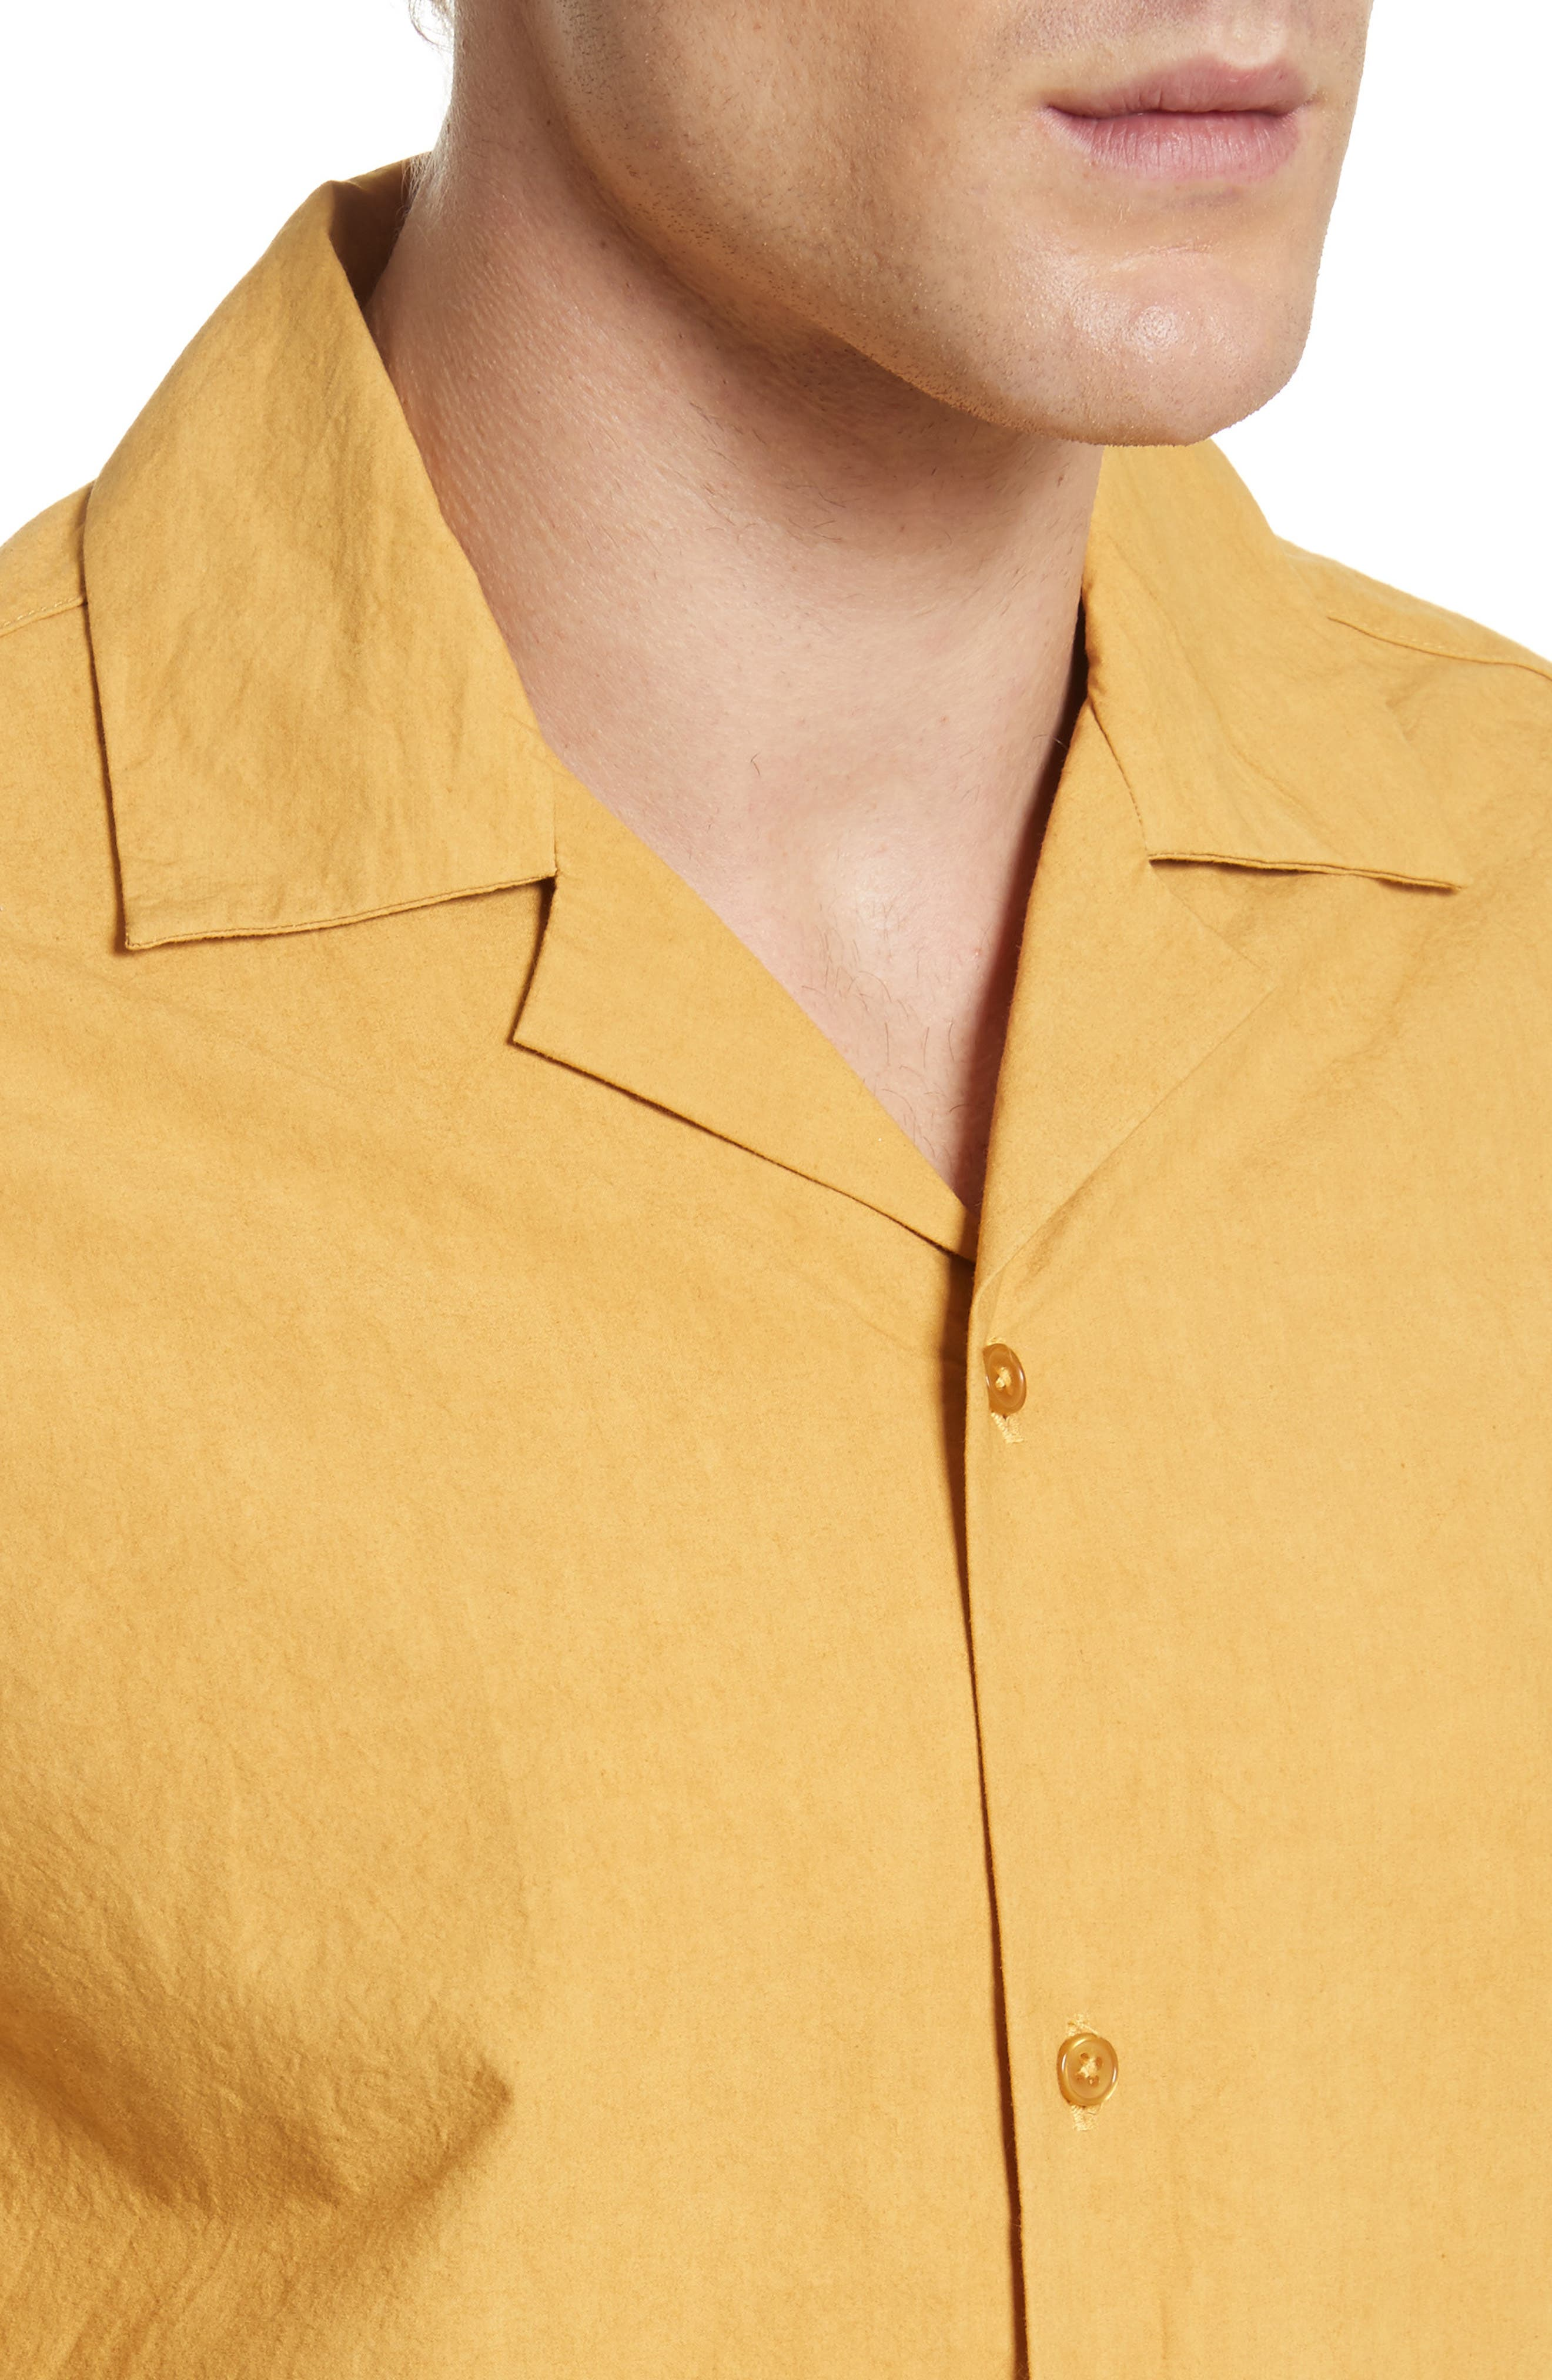 Canty Woven Camp Shirt,                             Alternate thumbnail 2, color,                             Dusty Amber